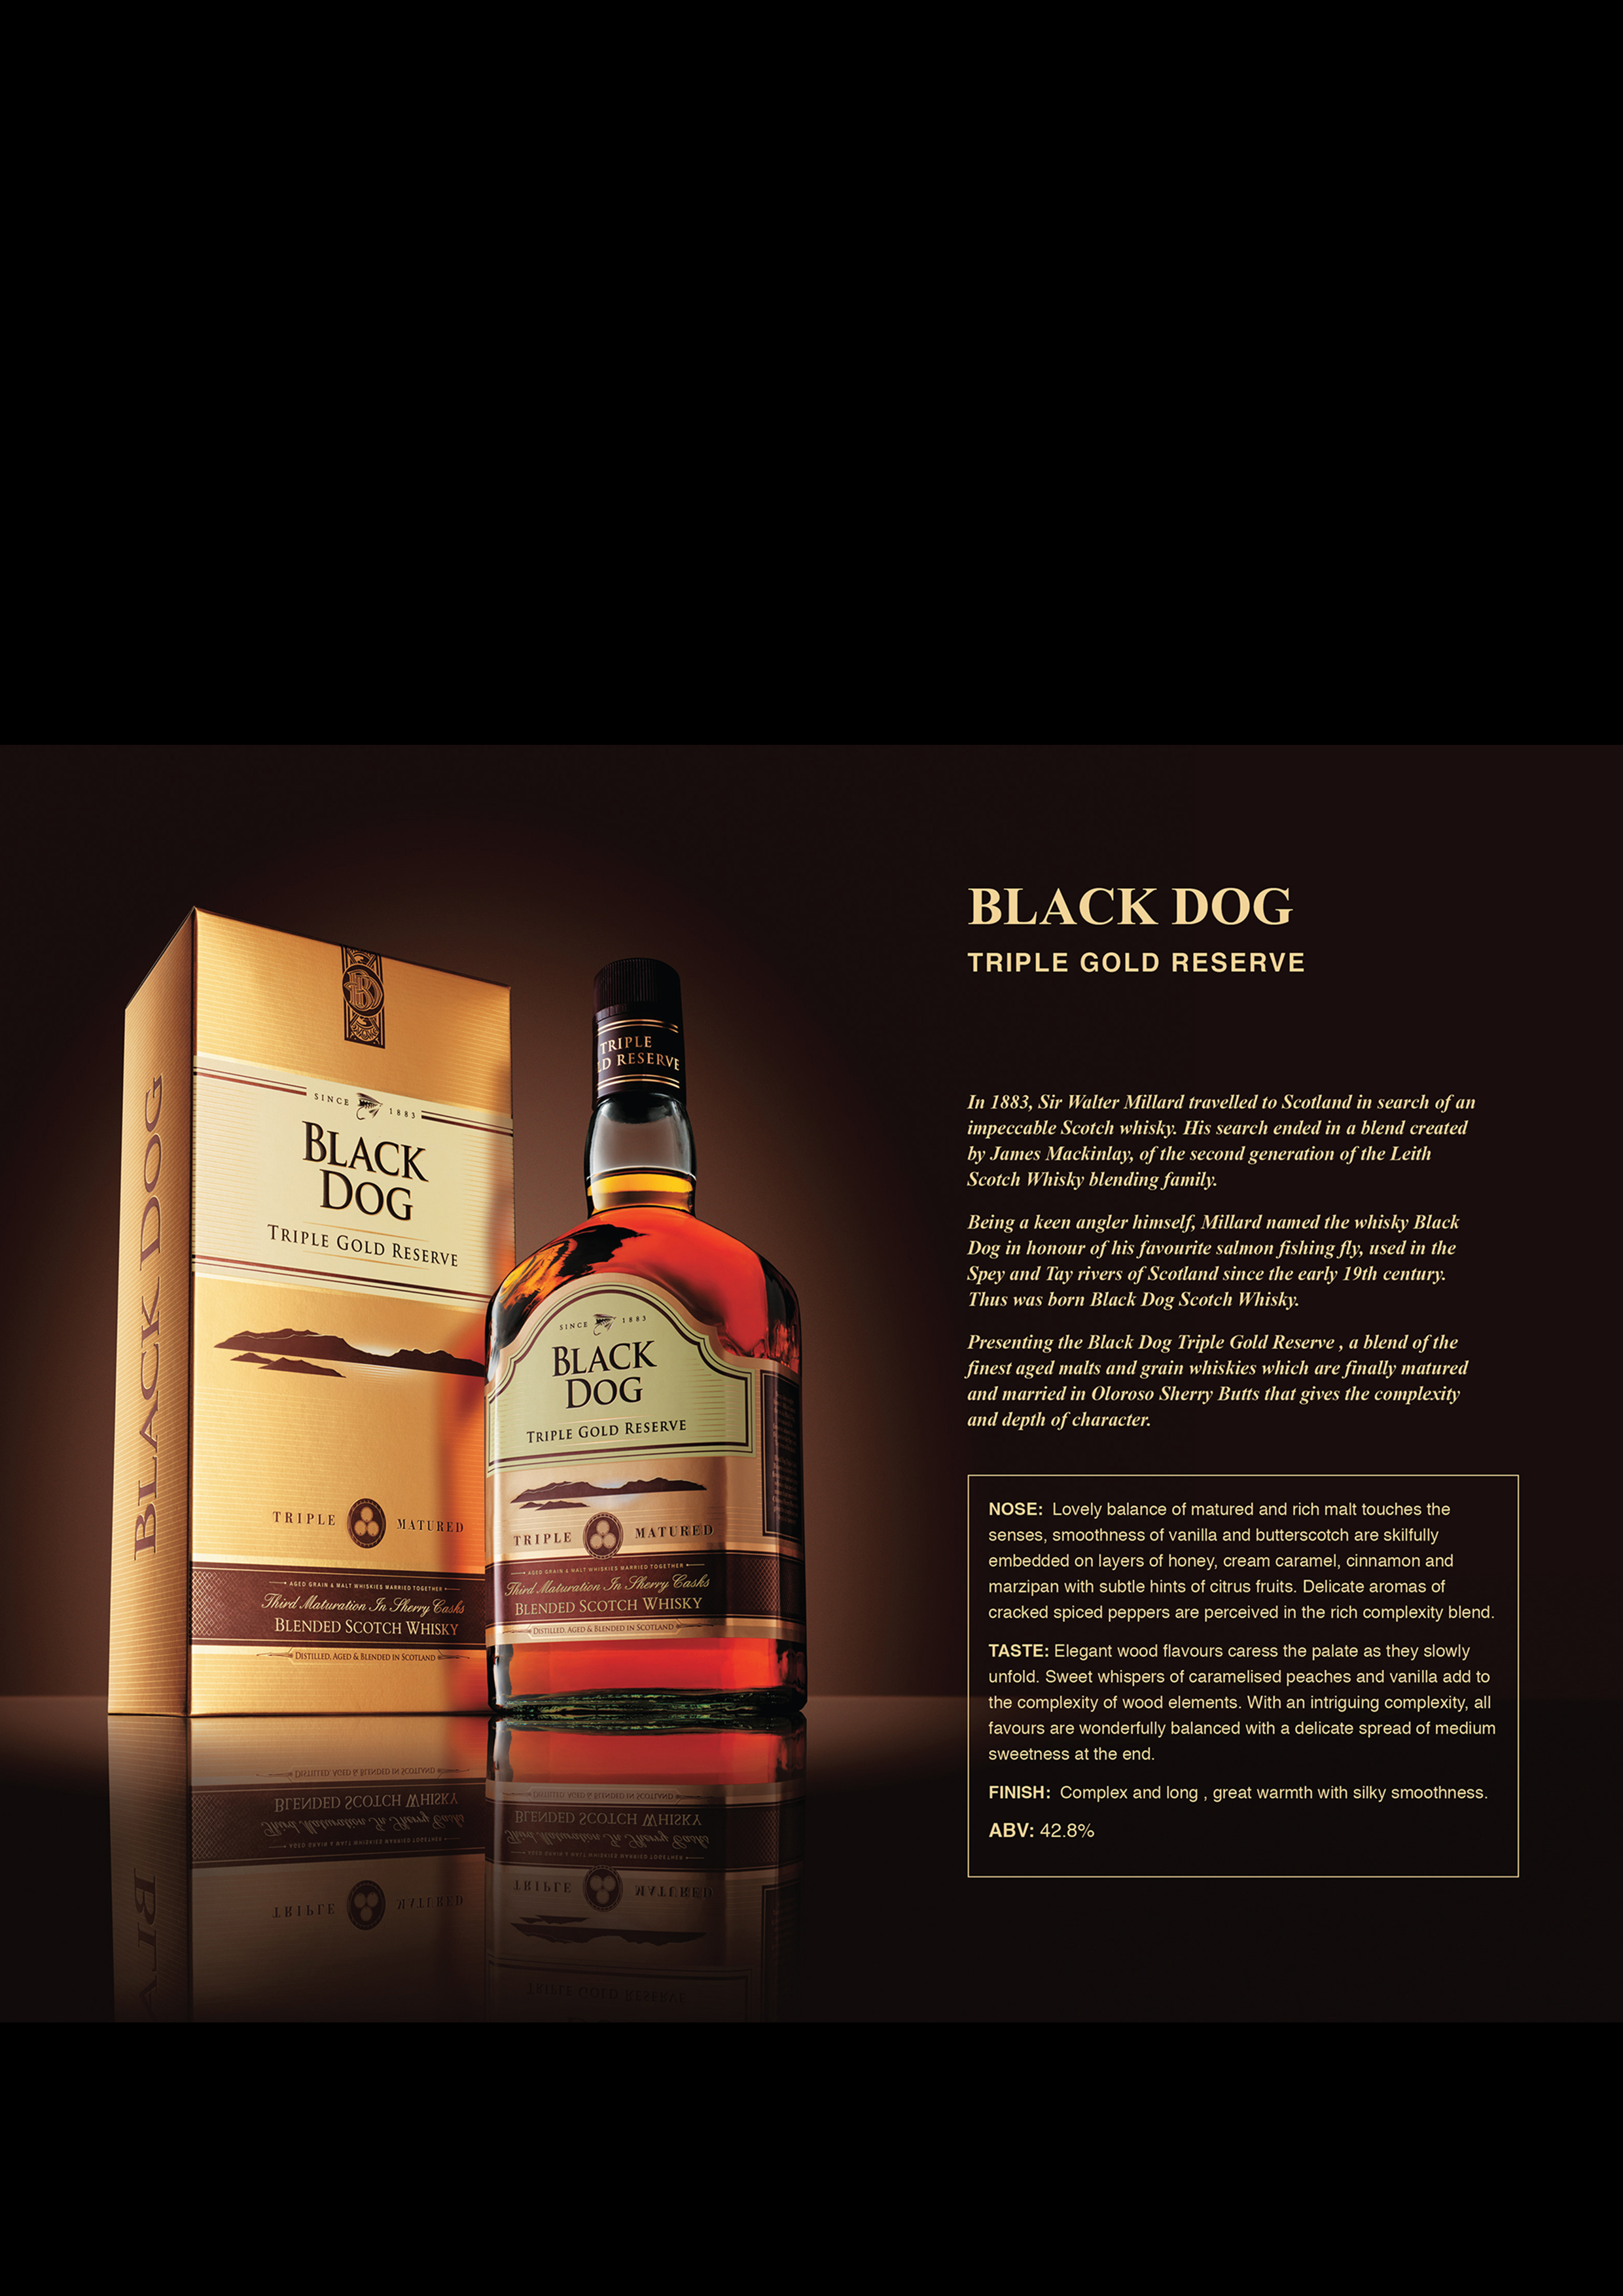 Black Dog Centenary Blended Whisky Tasting Note